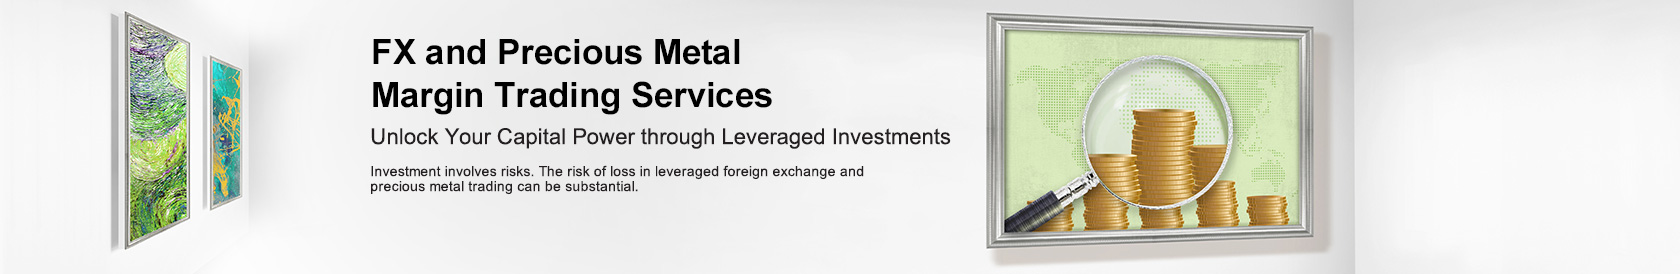 FX2-FX and Precious Metal Trading Services Investment involves risks